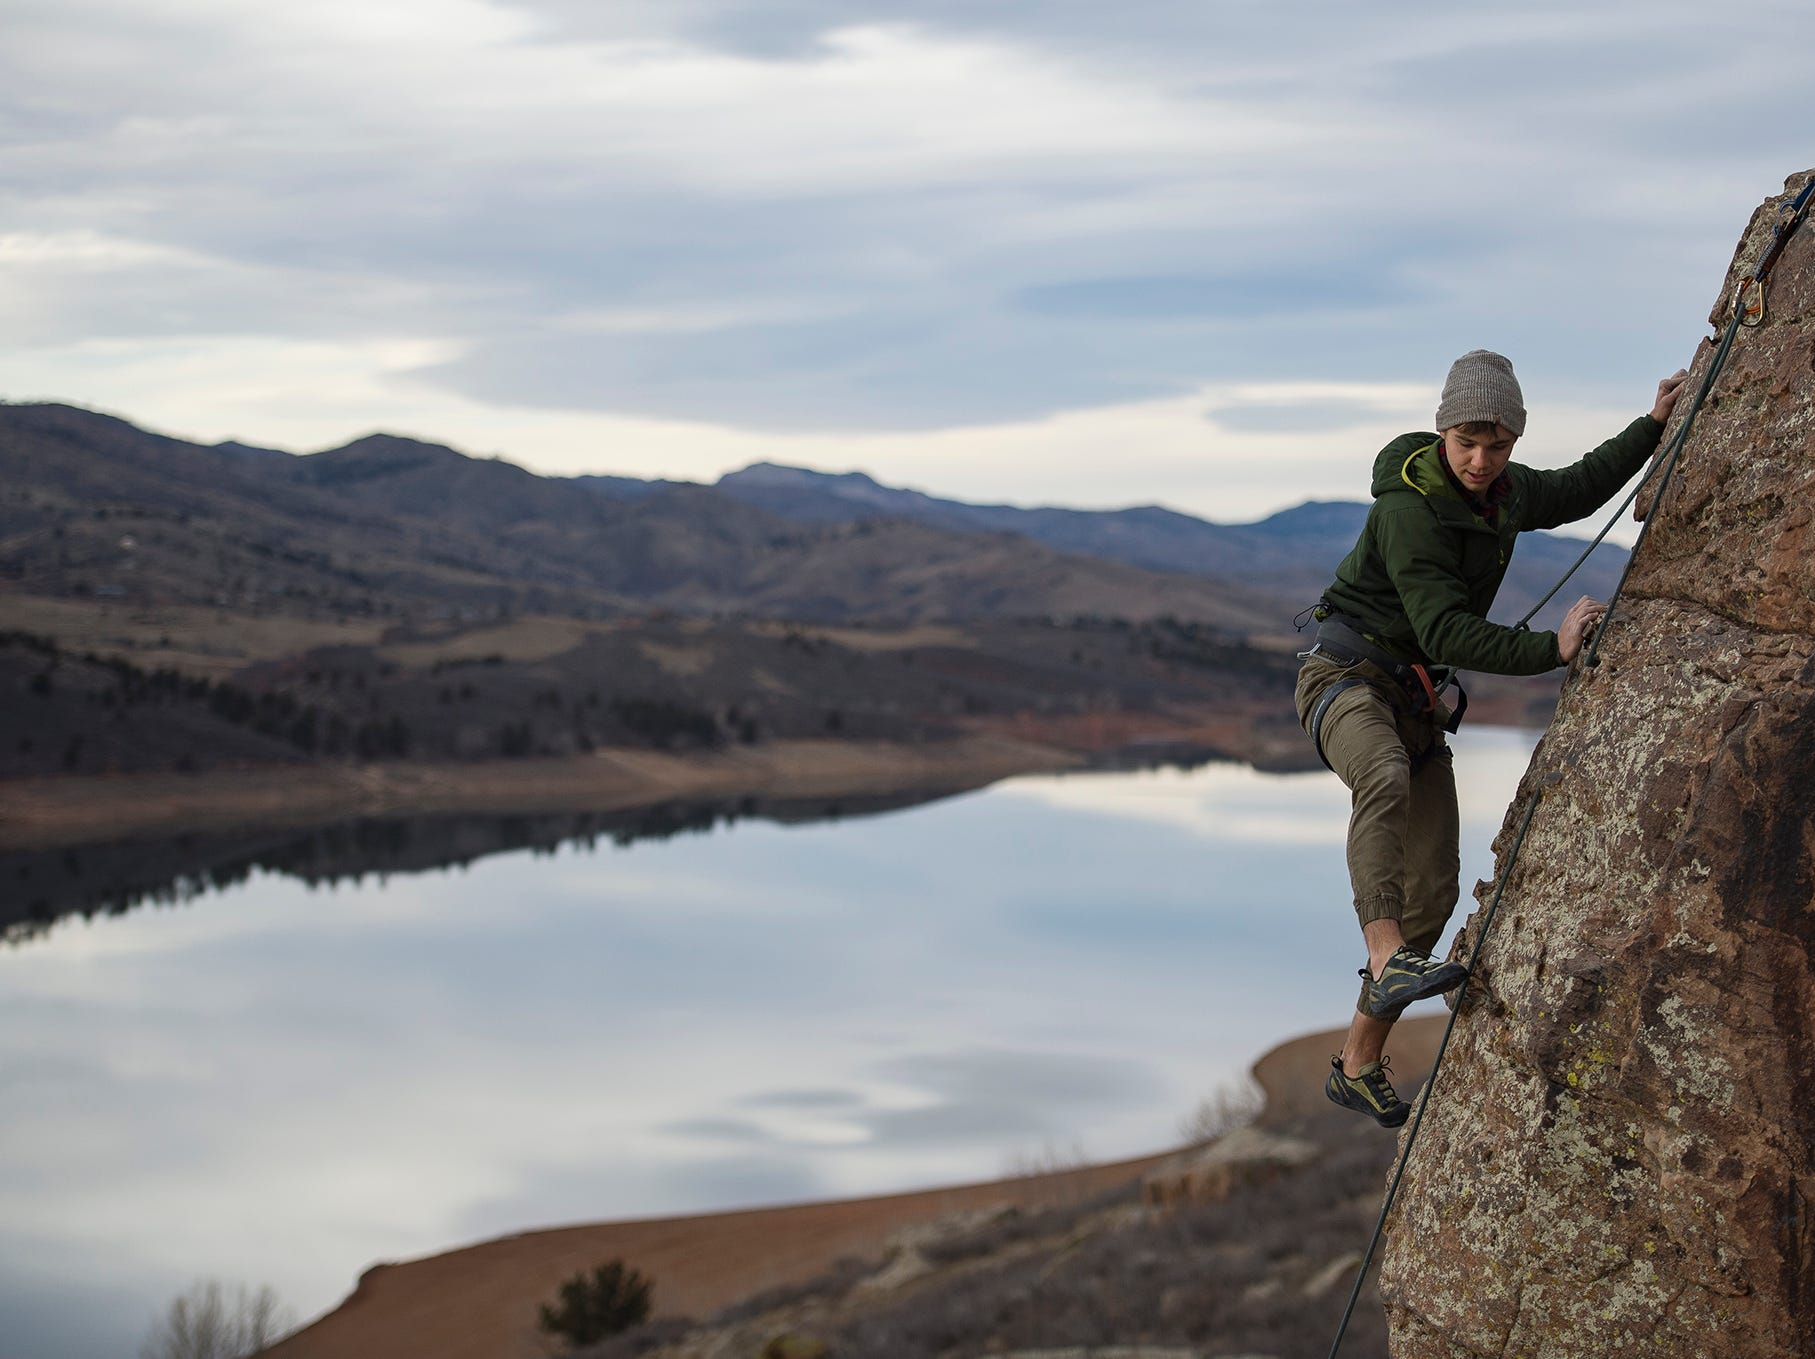 Alex Van Tress reaches the top of ledge while climbing with friends on Monday, Jan. 8, 2018, at Horsetooth Reservoir in Fort Collins, Colo.